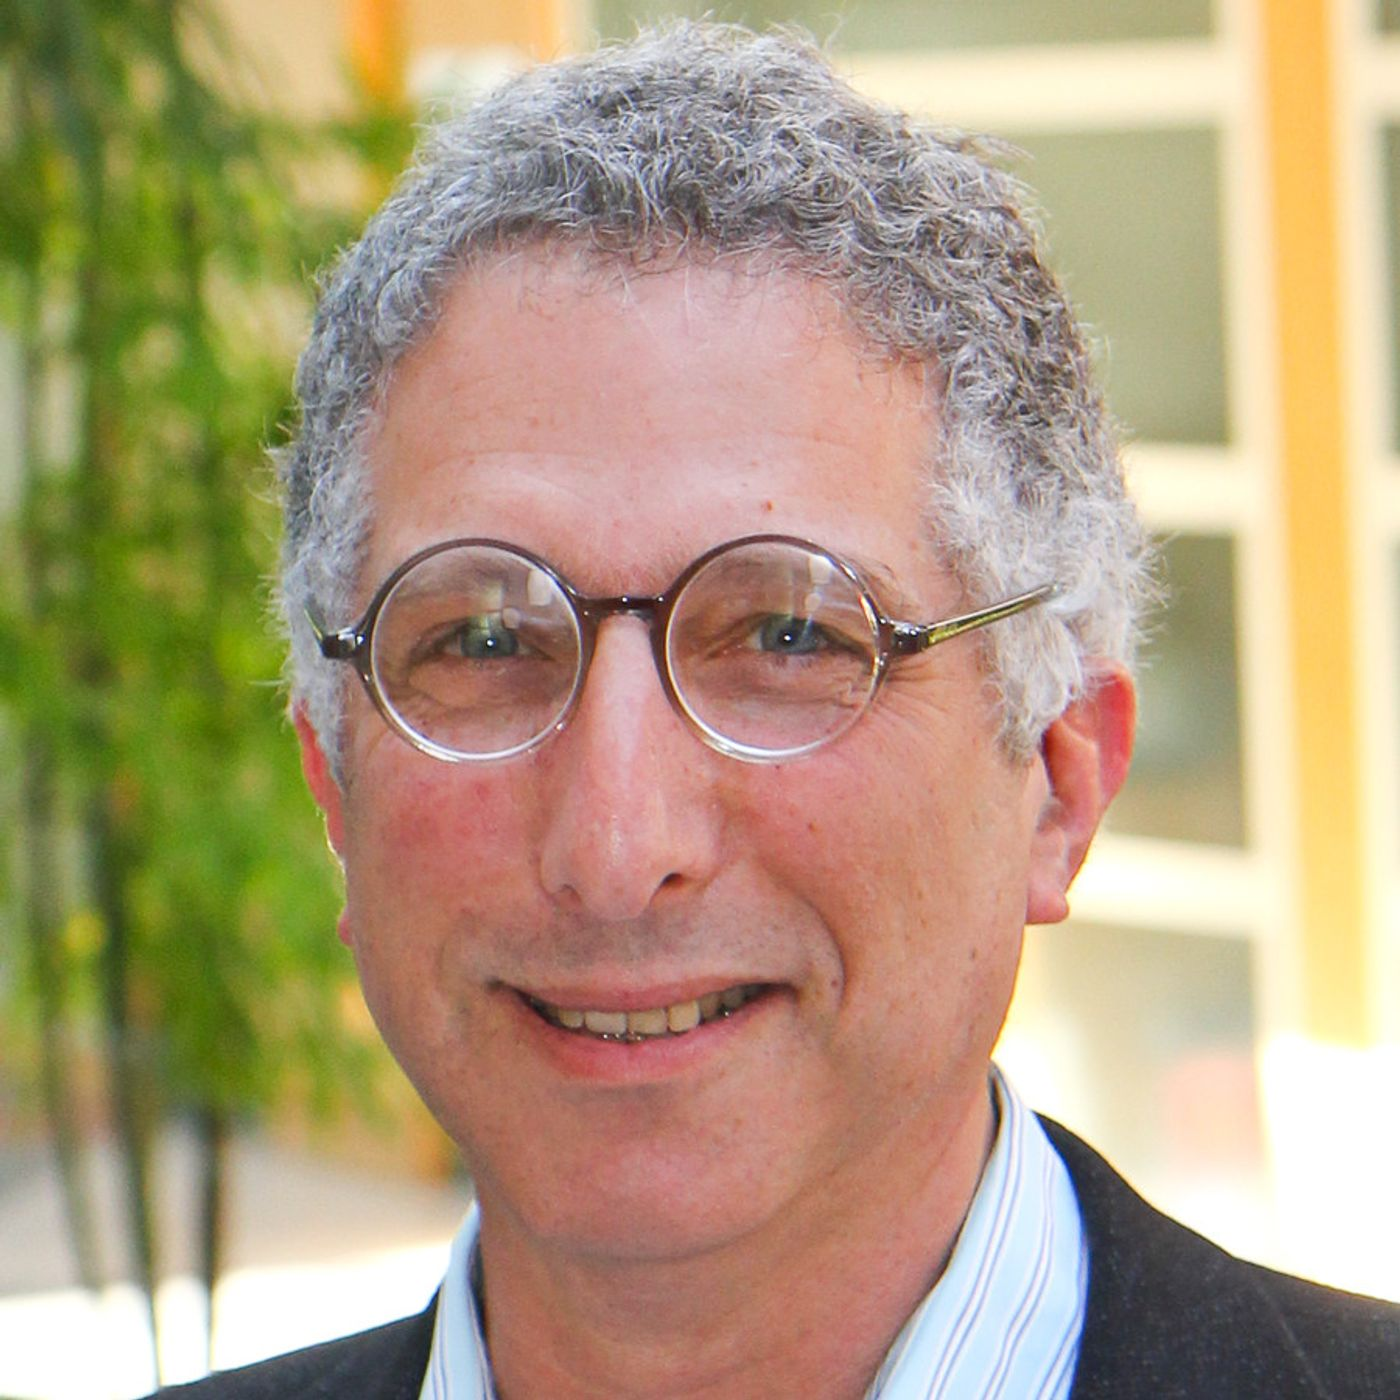 Dave Moskovitz - Education is the most important tool